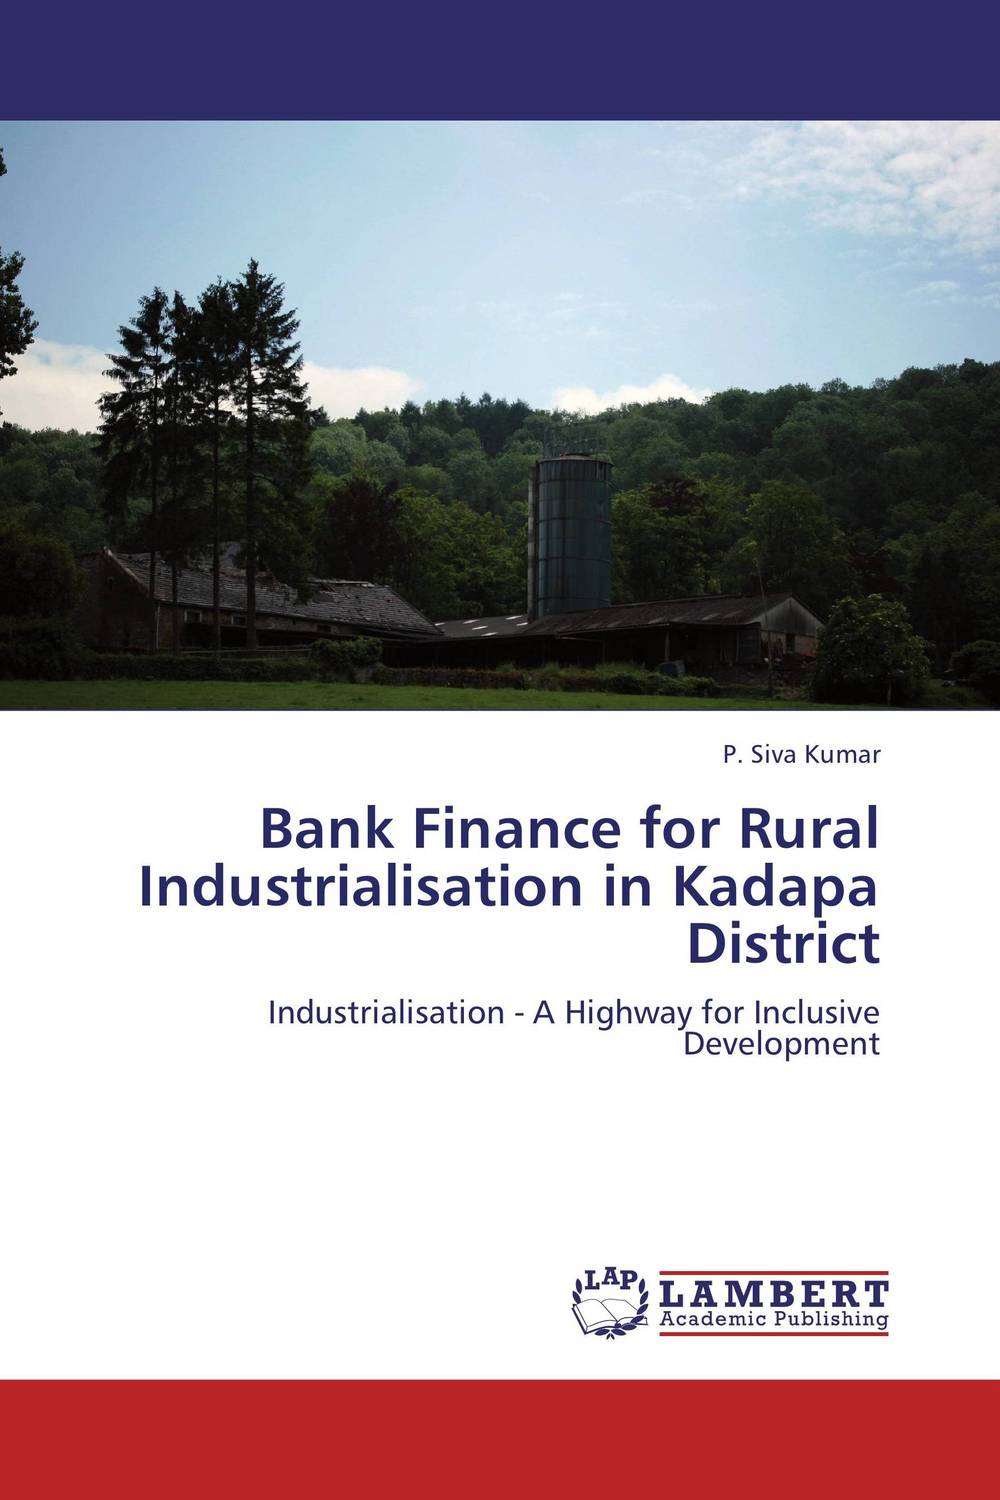 Bank Finance for Rural Industrialisation in Kadapa District jaynal ud din ahmed and mohd abdul rashid institutional finance for micro and small entreprises in india